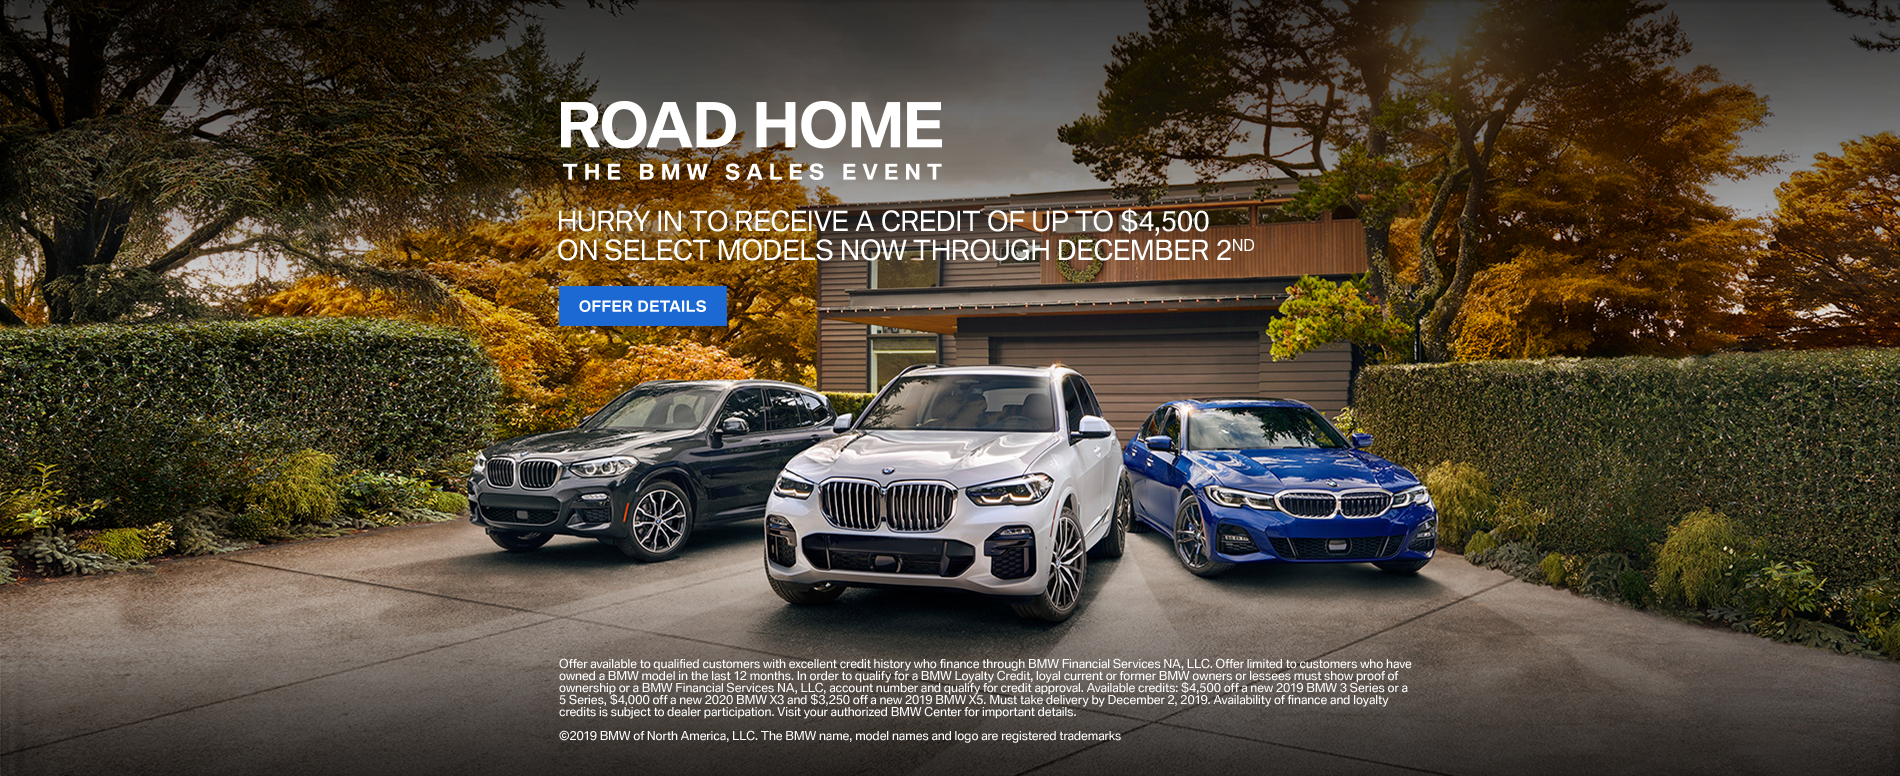 Road Home BMW Sales Event